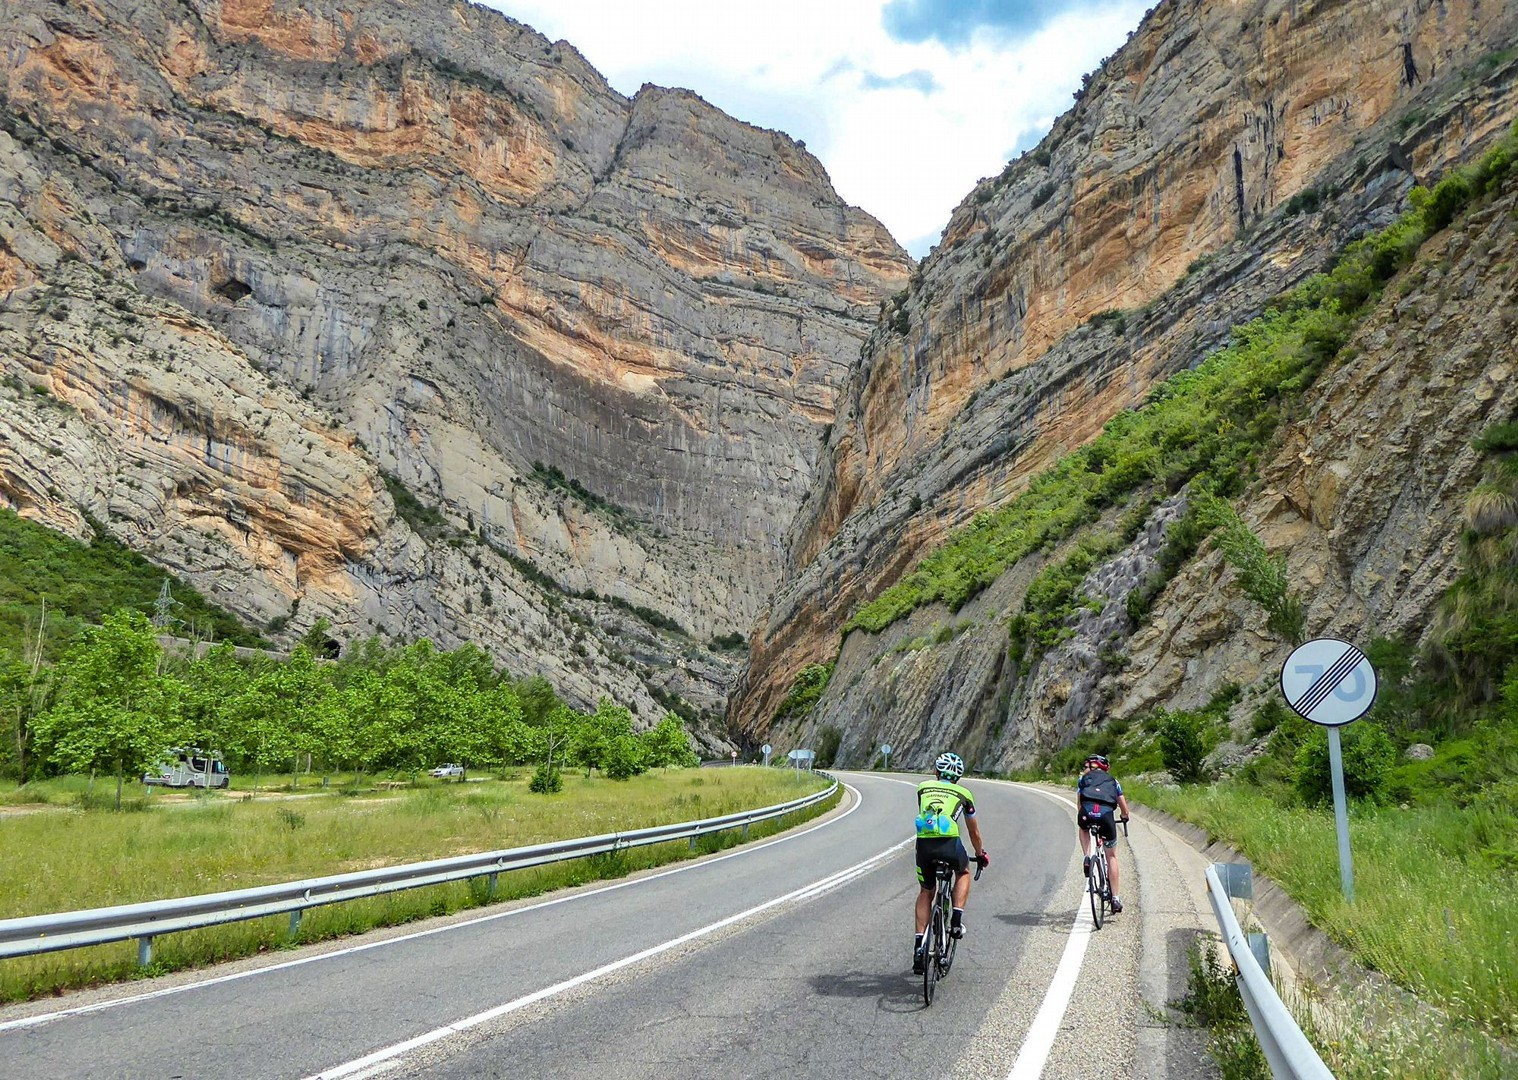 northern-spain-iconic-journey-cycling-from-bilbao-to-barcelona-holiday.jpg - Northern Spain - Bilbao to Barcelona - Guided Road Cycling Holiday - Road Cycling